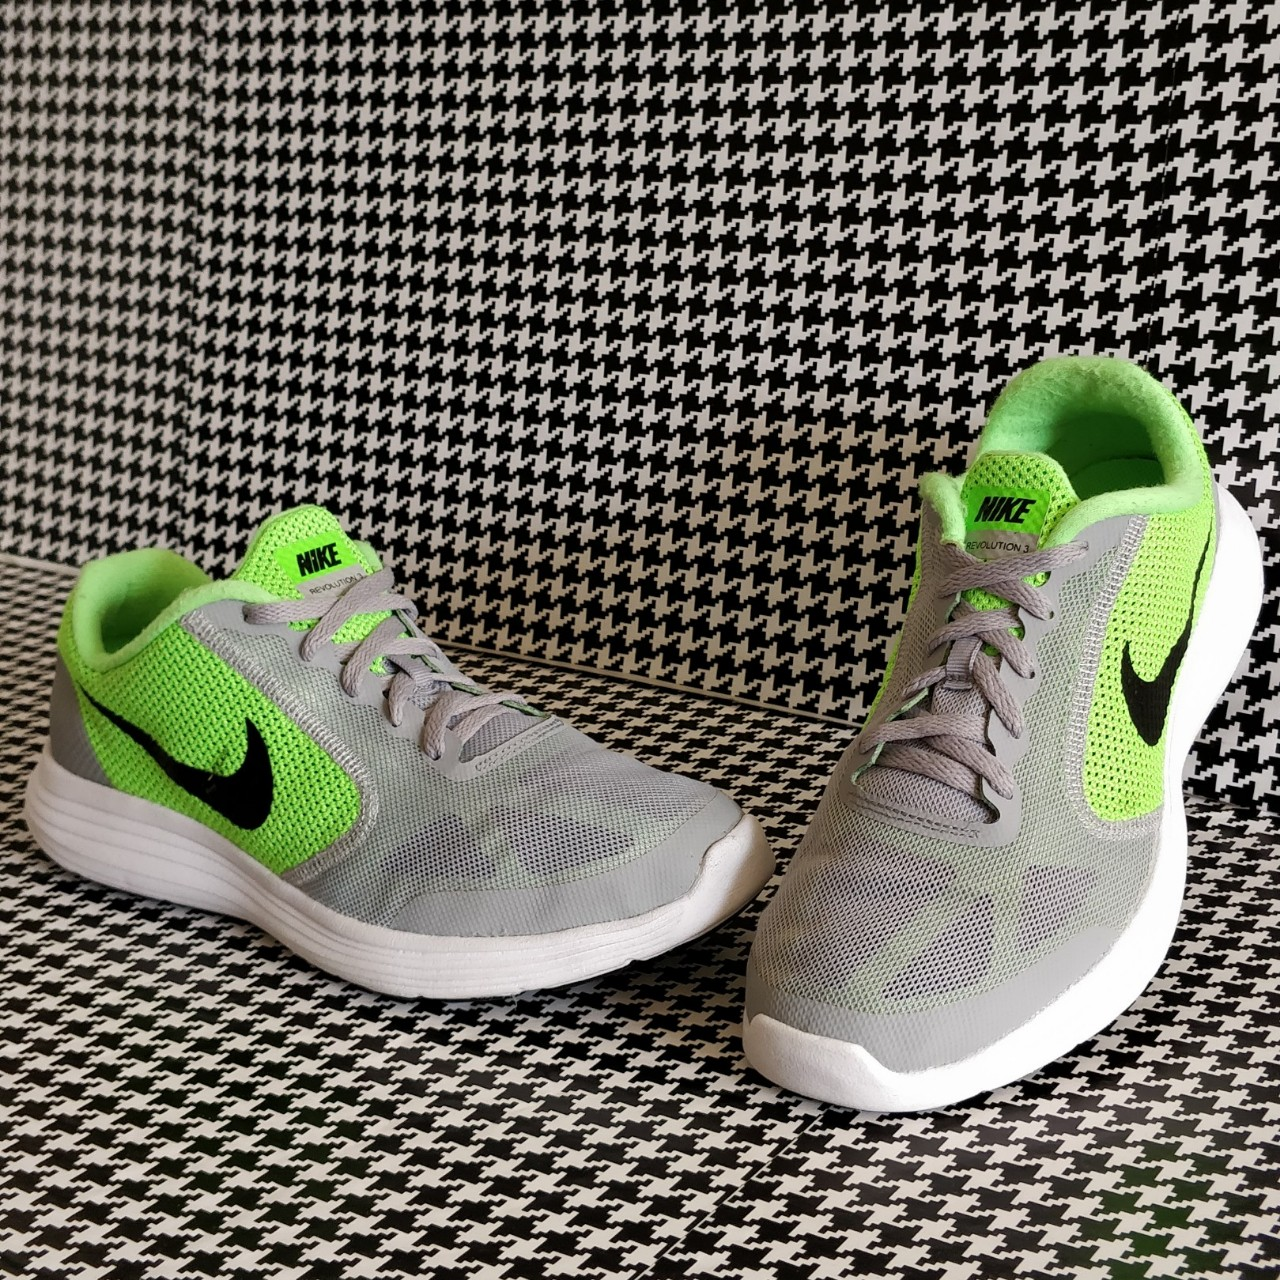 Nike Revolution 3 Used and in good condition. Youth Depop